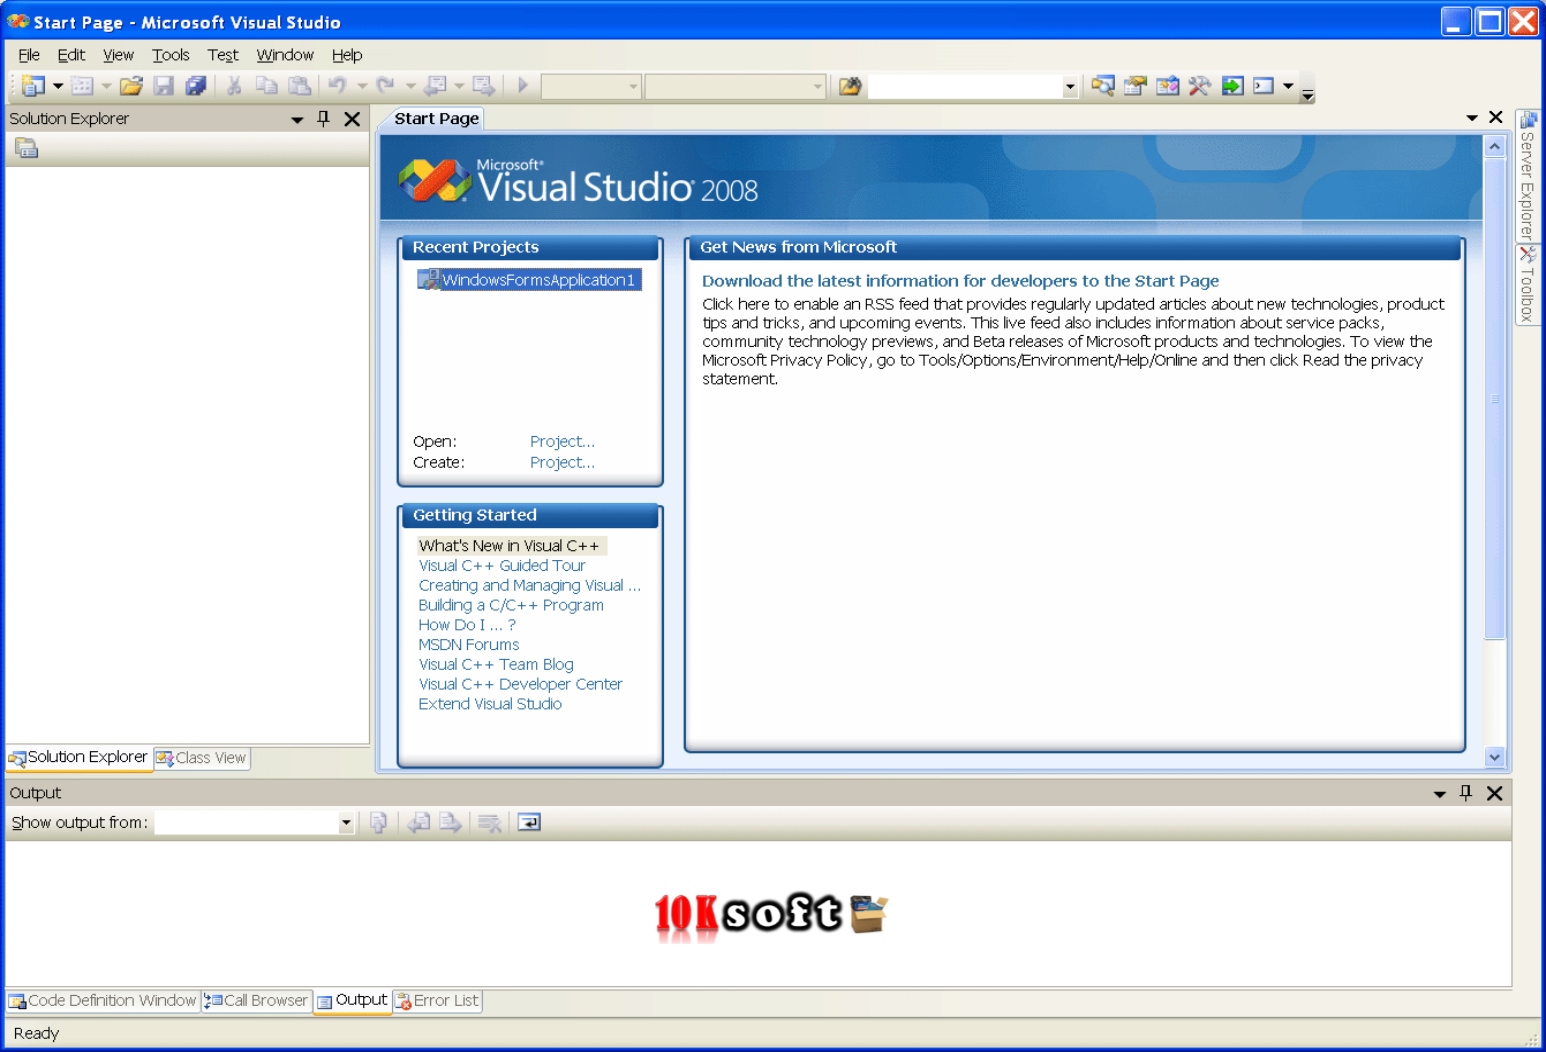 Microsoft Visual Studio 2008 Free Download